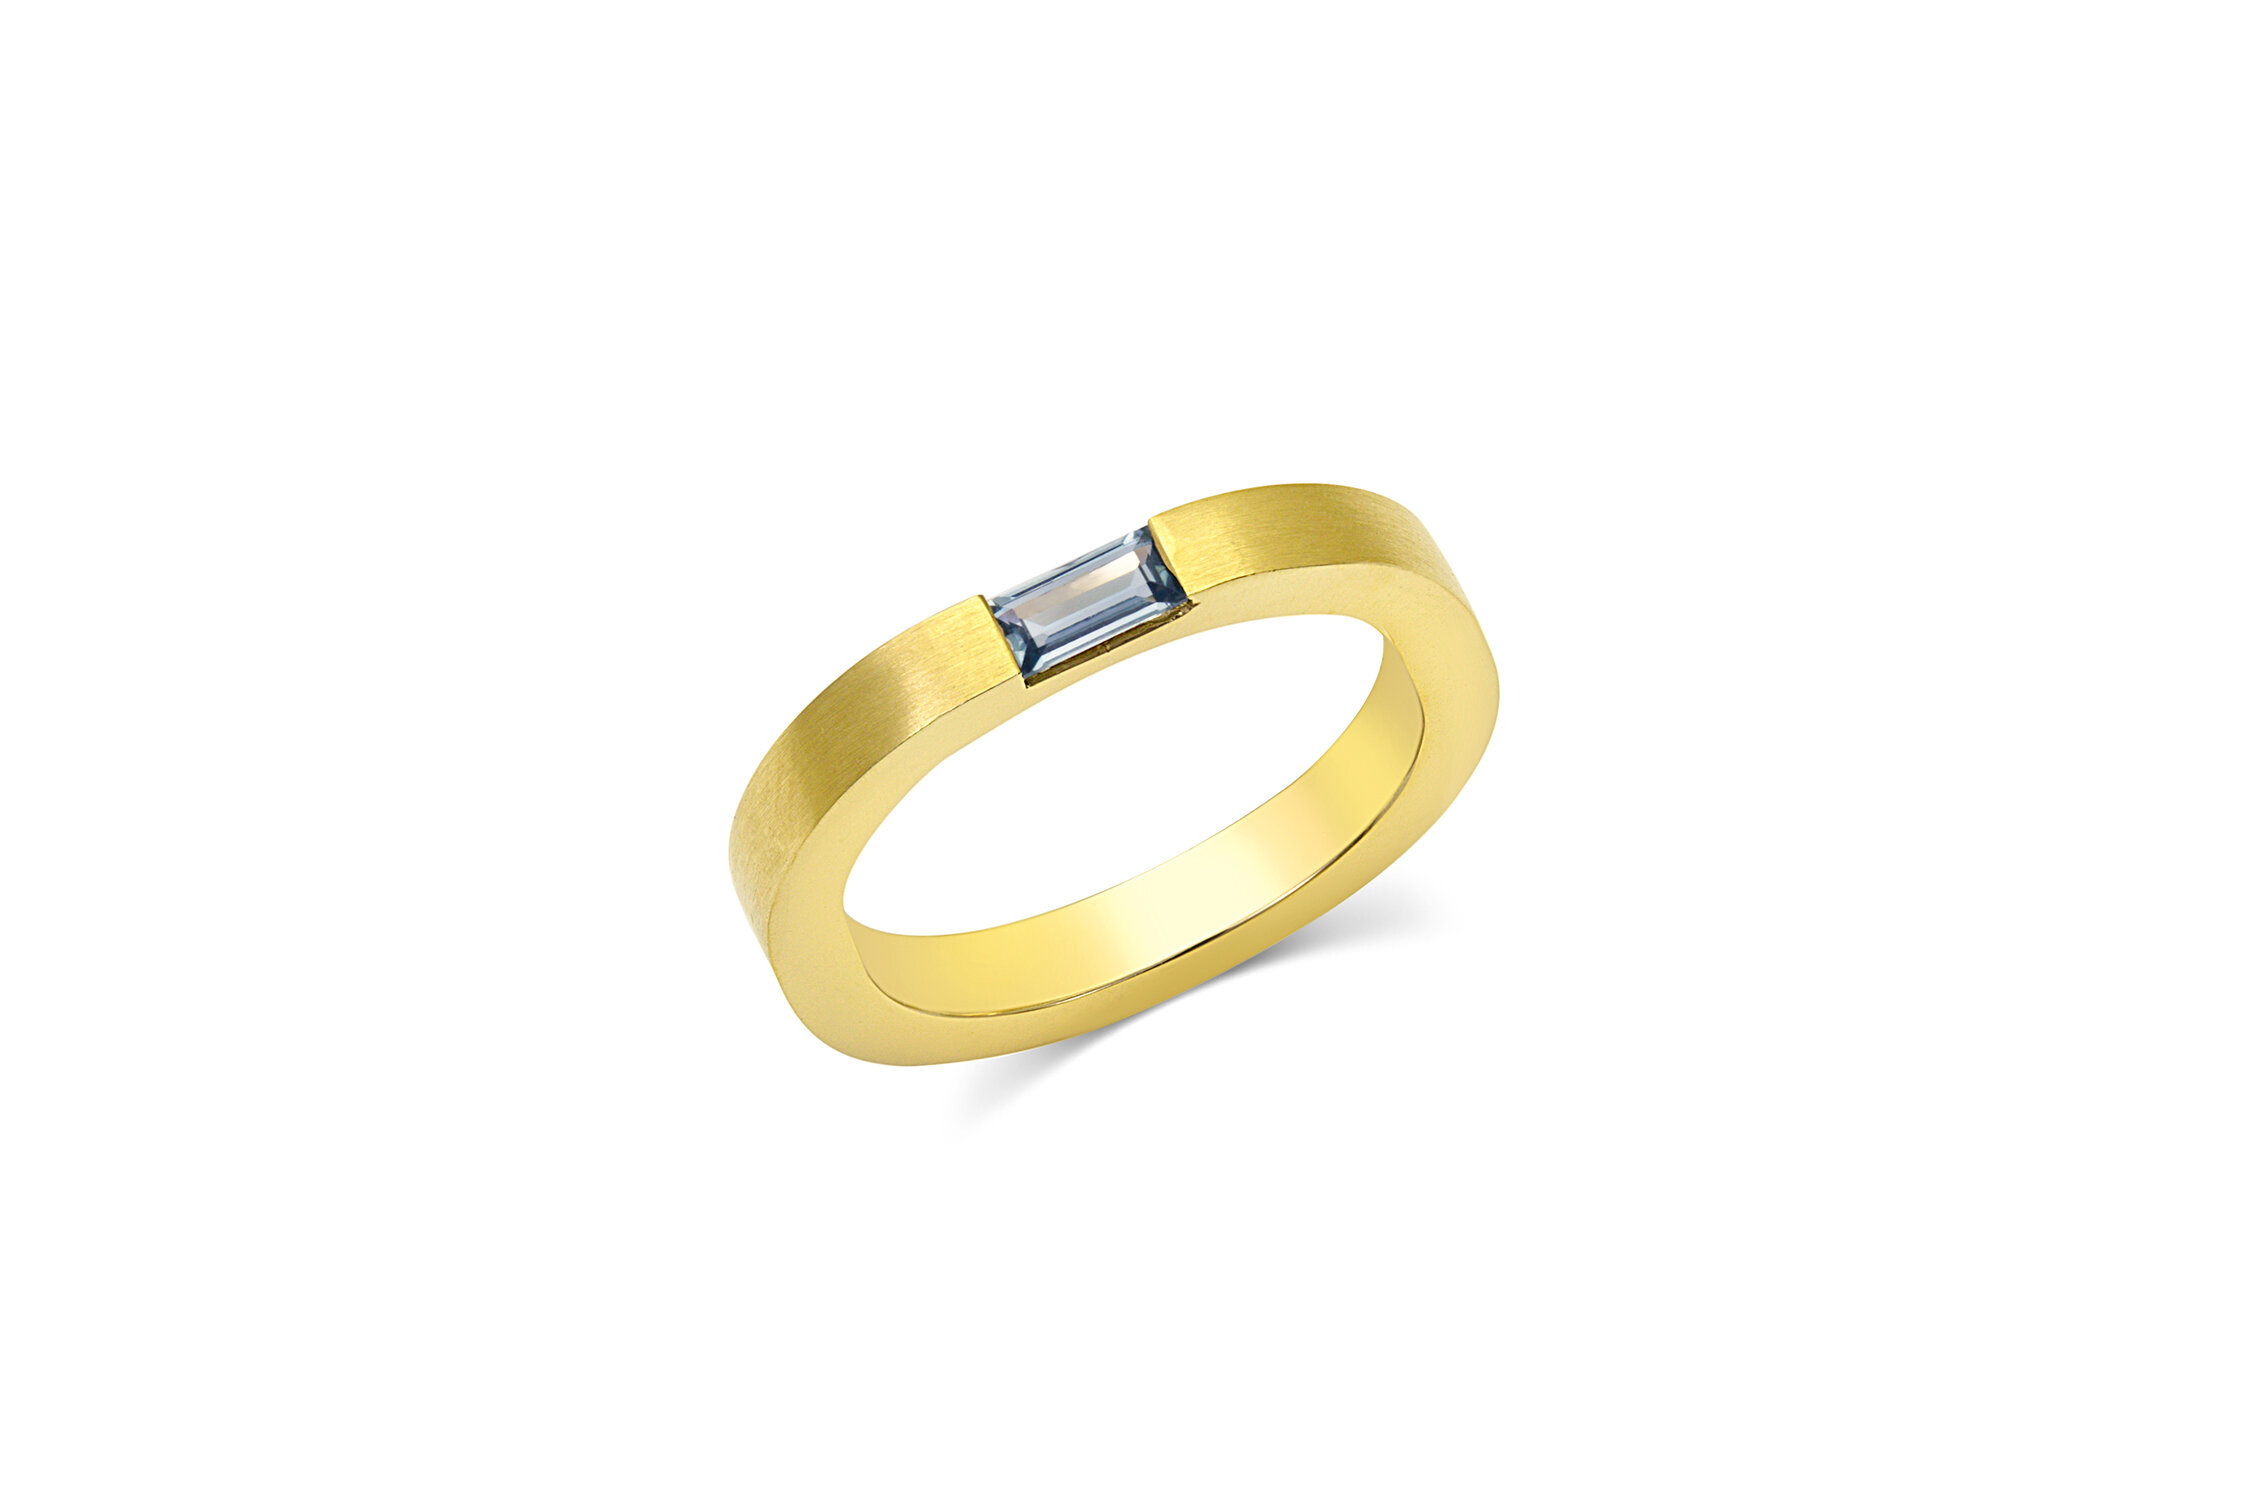 Sustainable Ethical Recycled Sterling Silver Stacking Bands Stacking Rings Minimal Geometric Jewellery